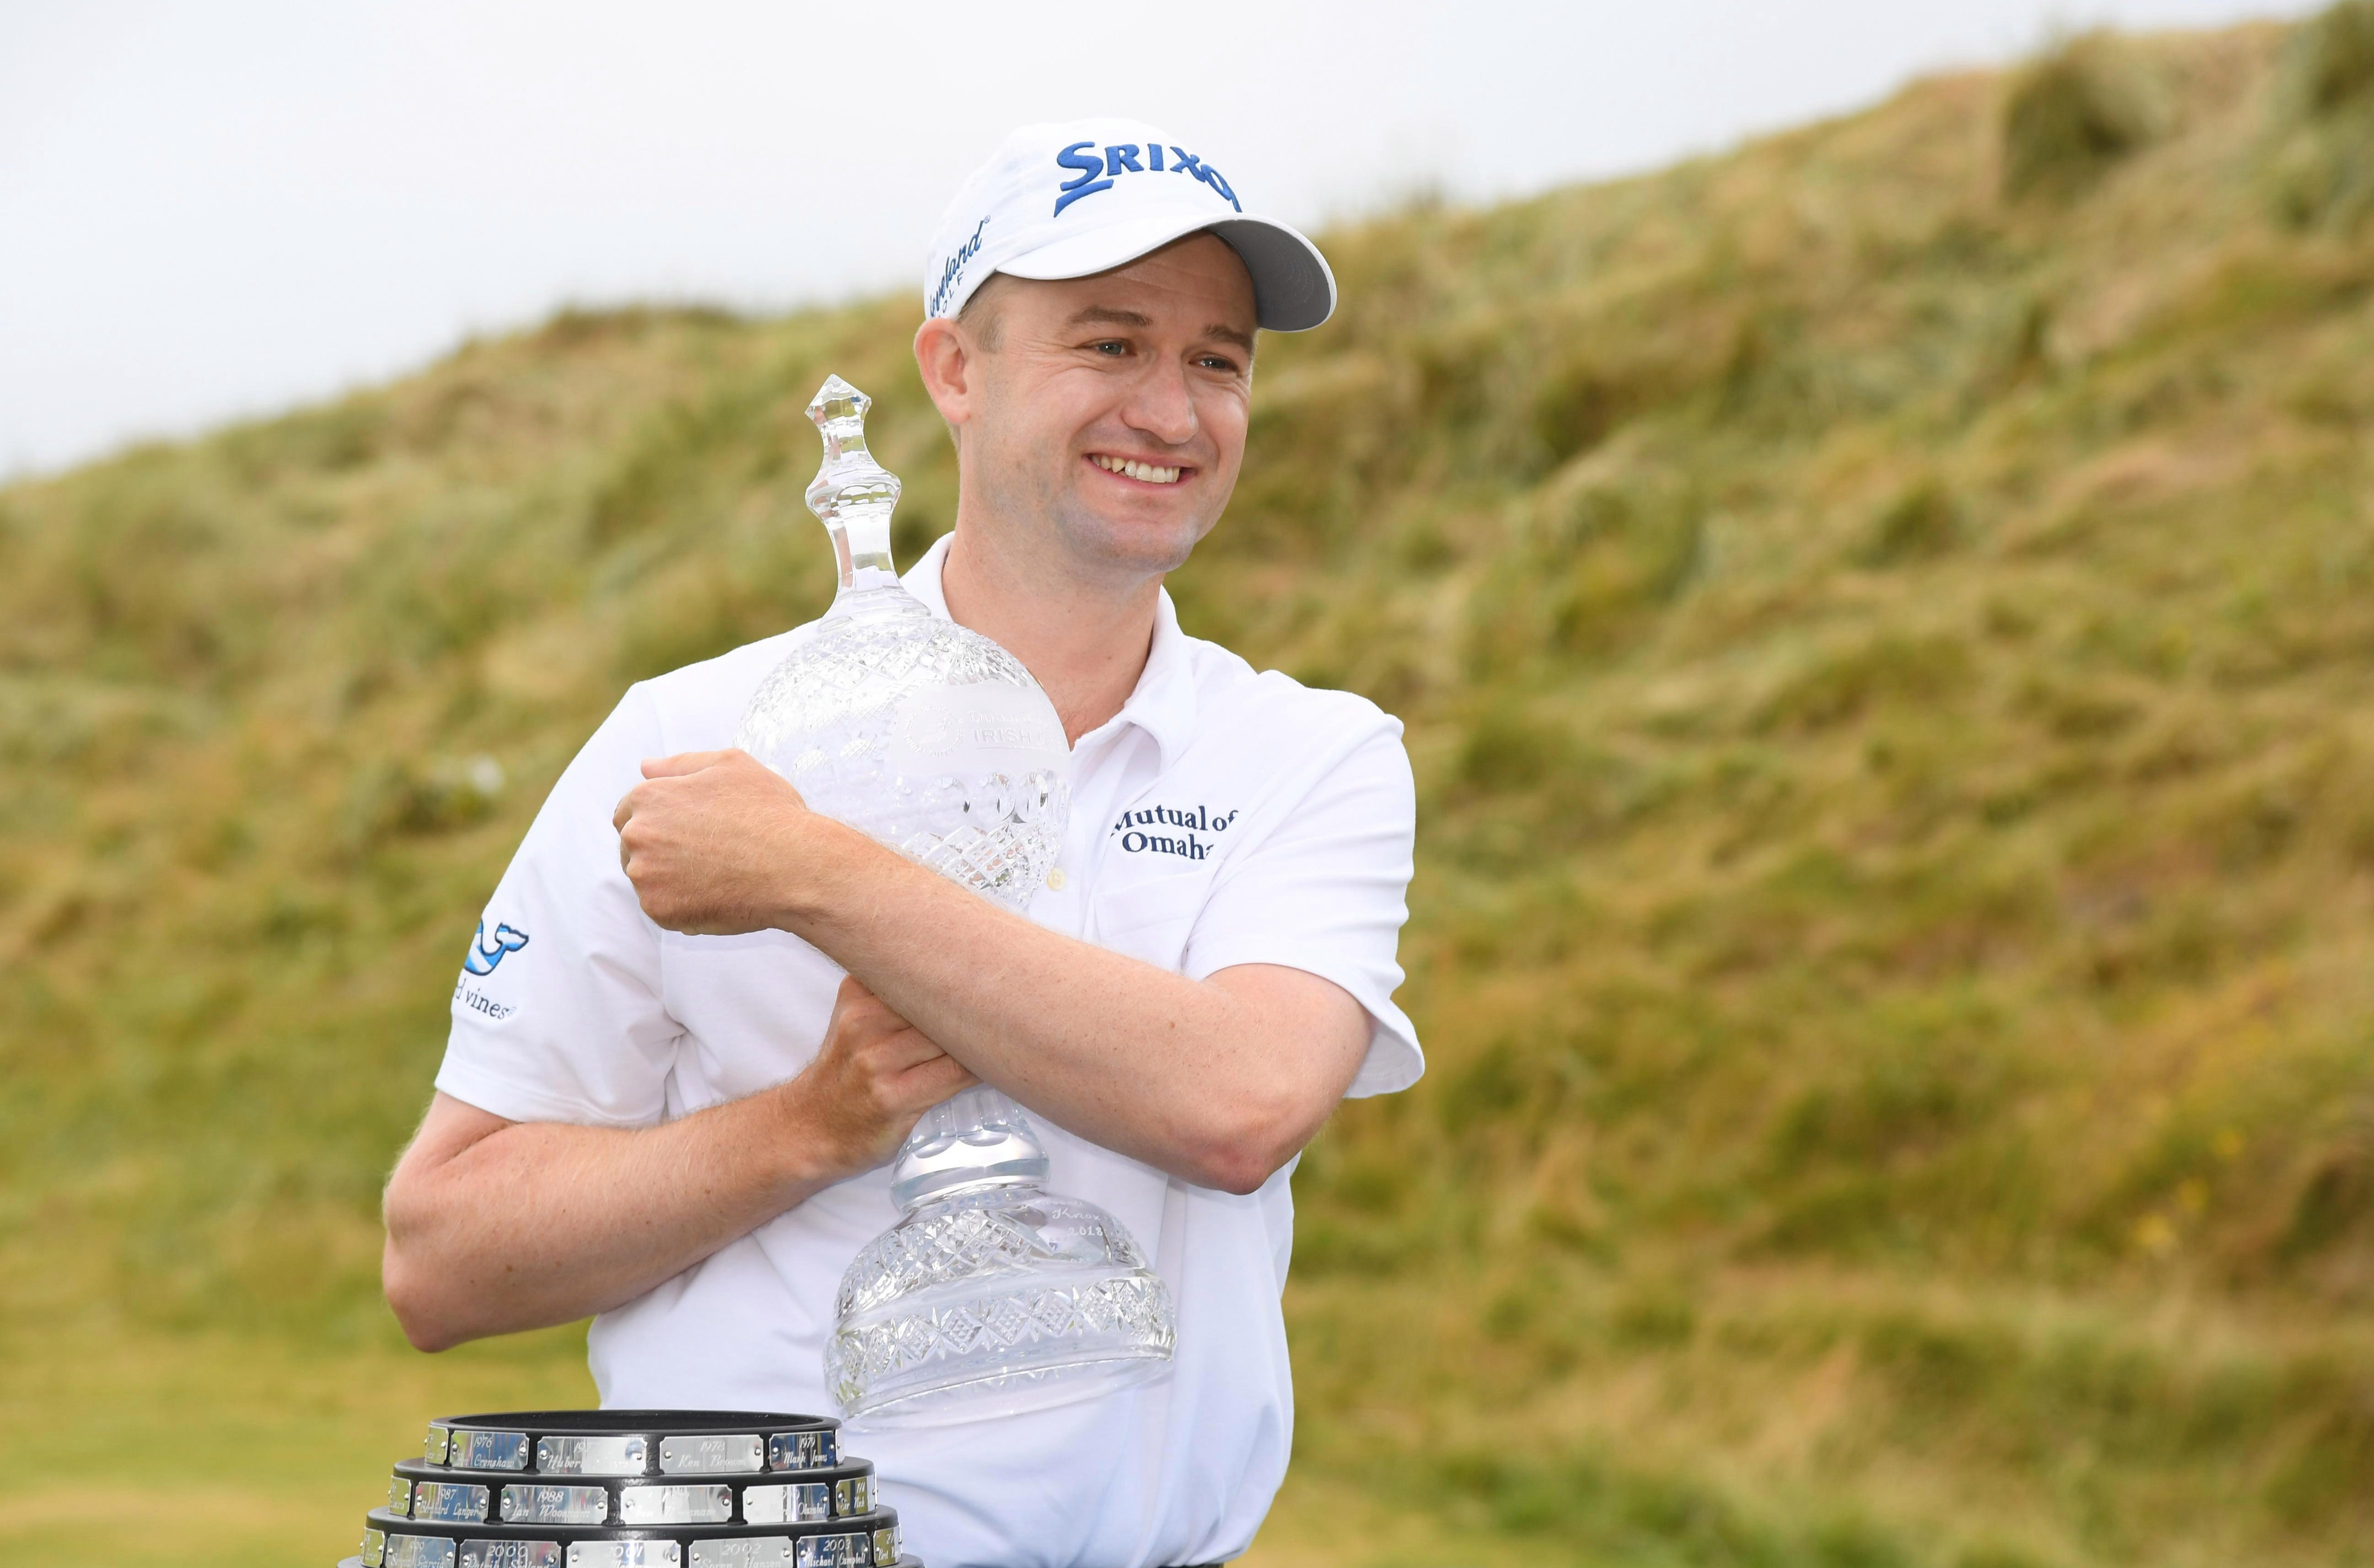 Russell Knox won the Irish Open after two mammoth putts